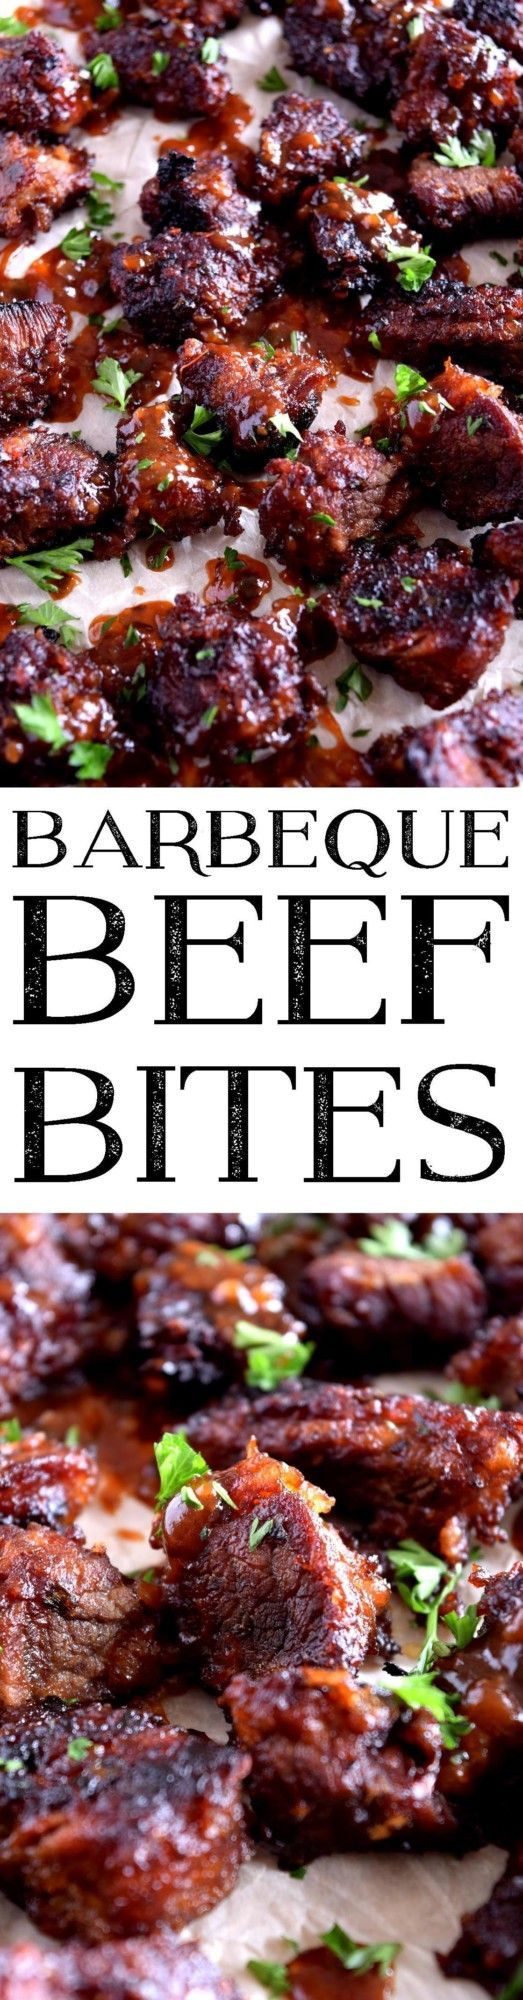 Barbeque Beef Bites - Lord Byron's Kitchen